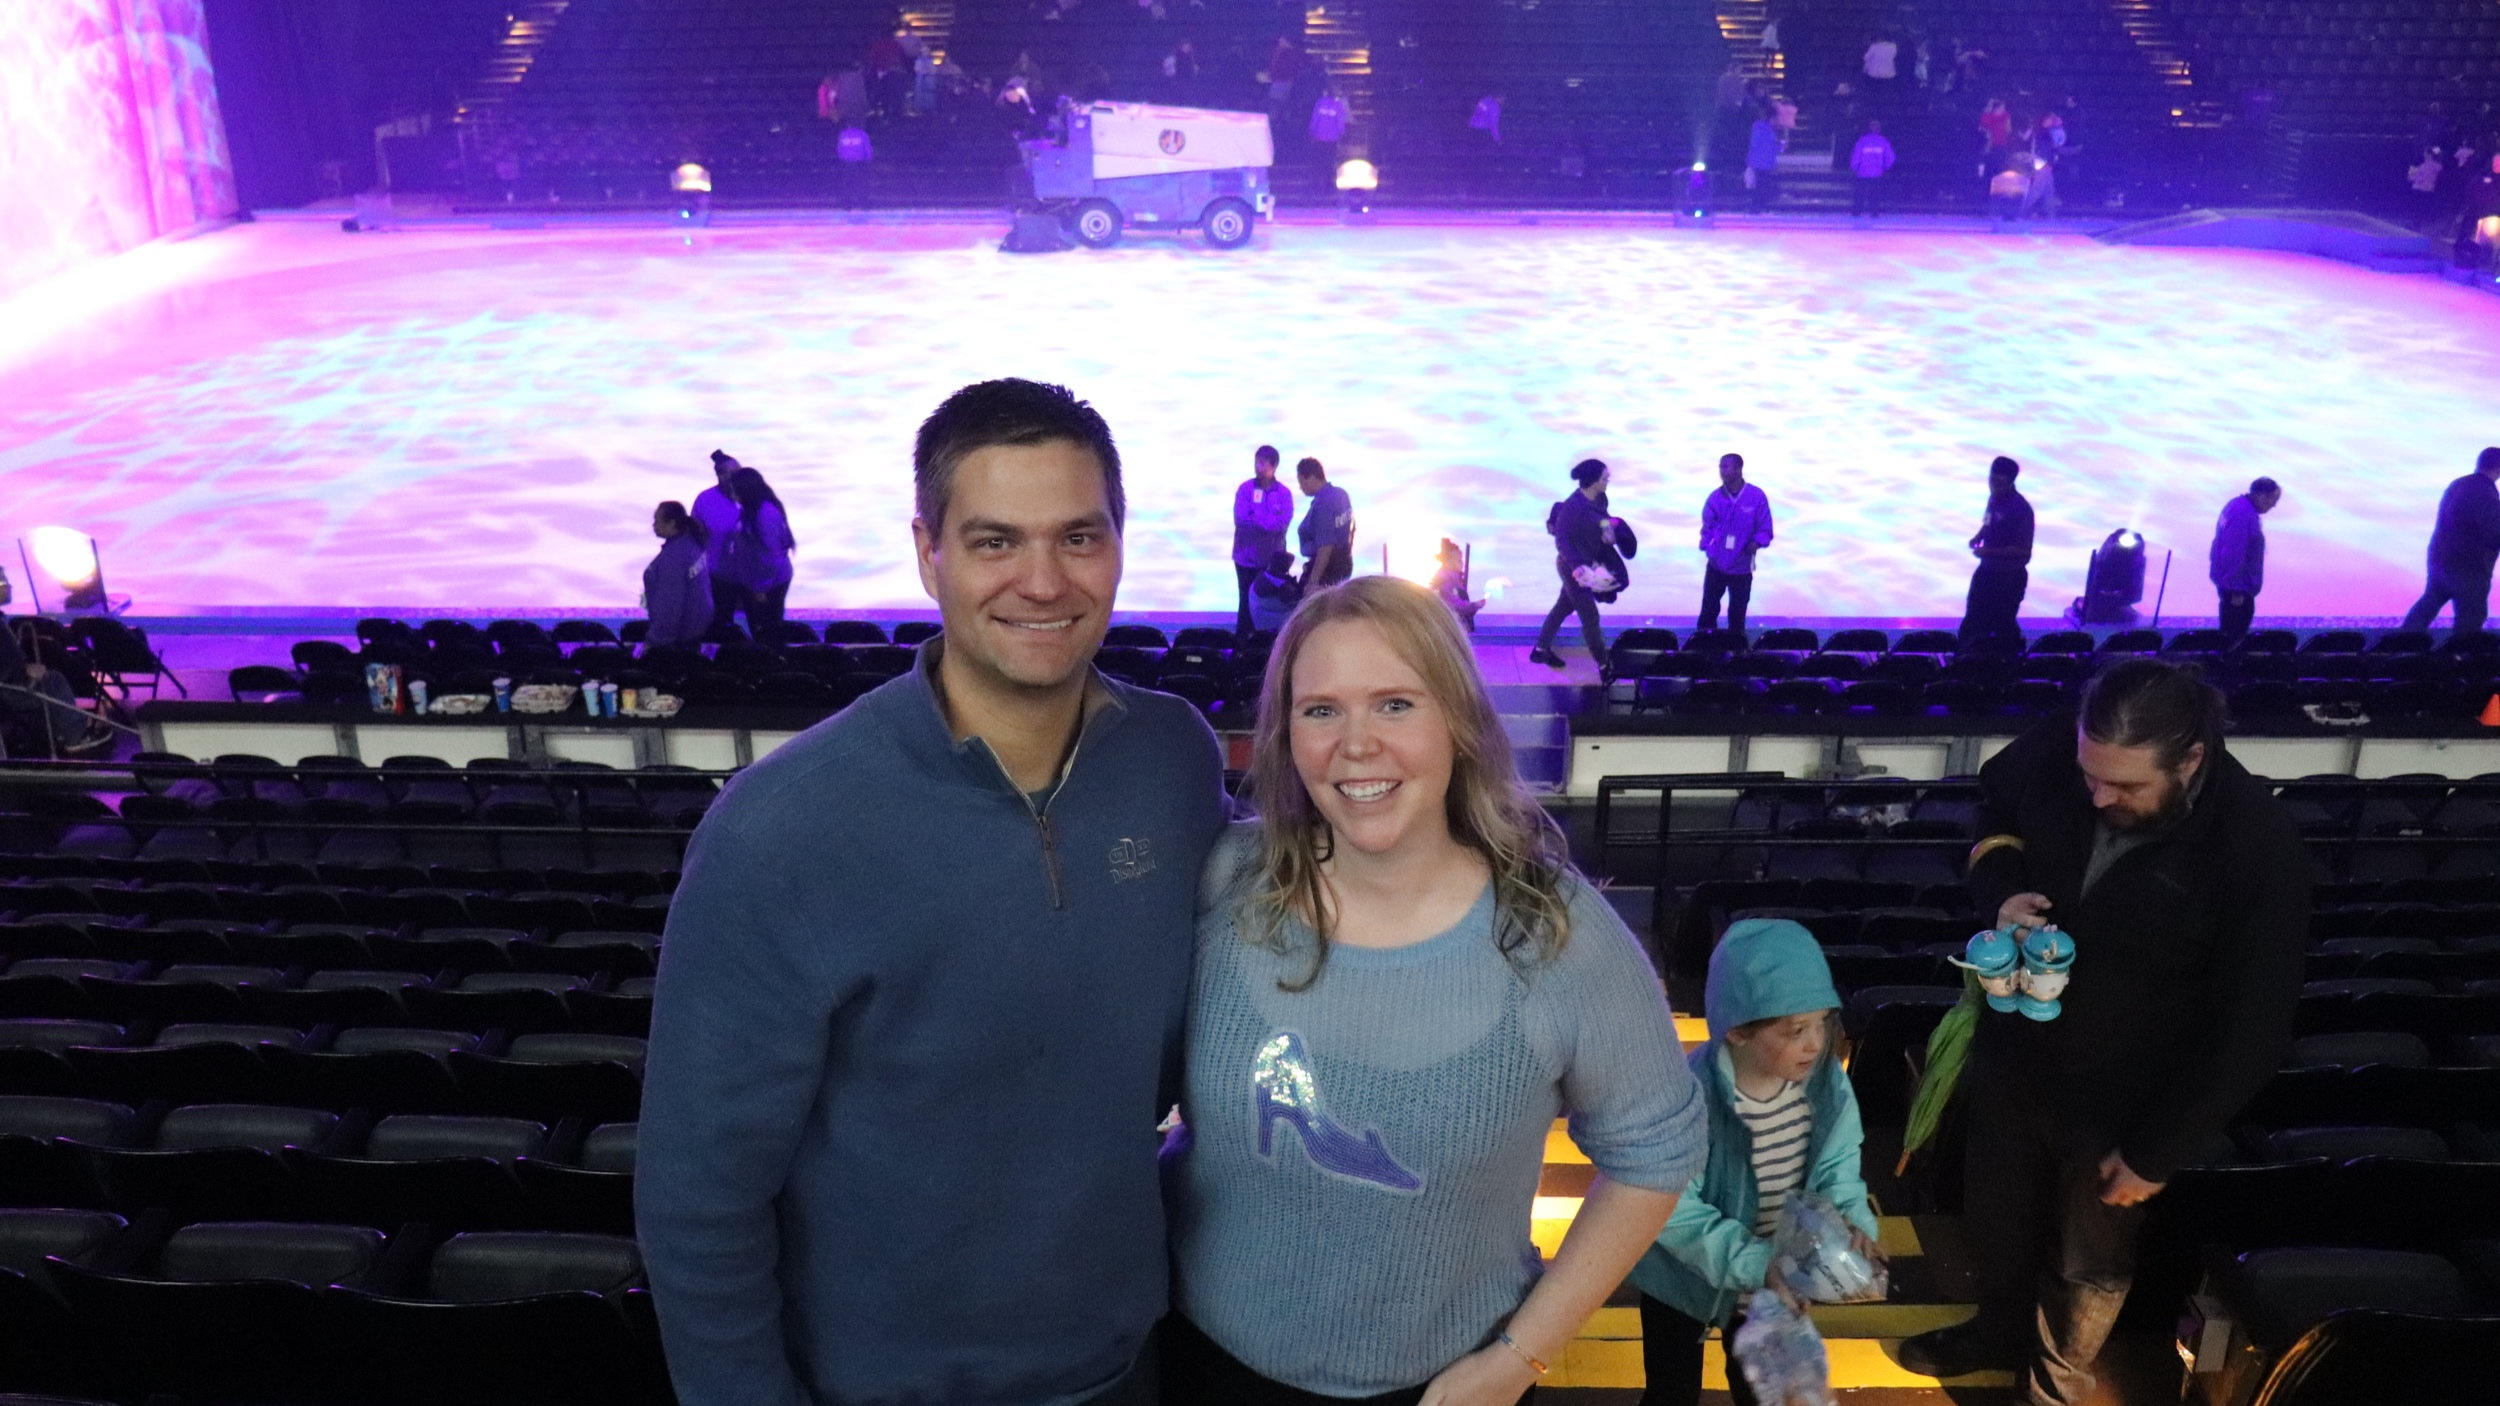 We had a blast at Disney On Ice presents Worlds of Enchantment